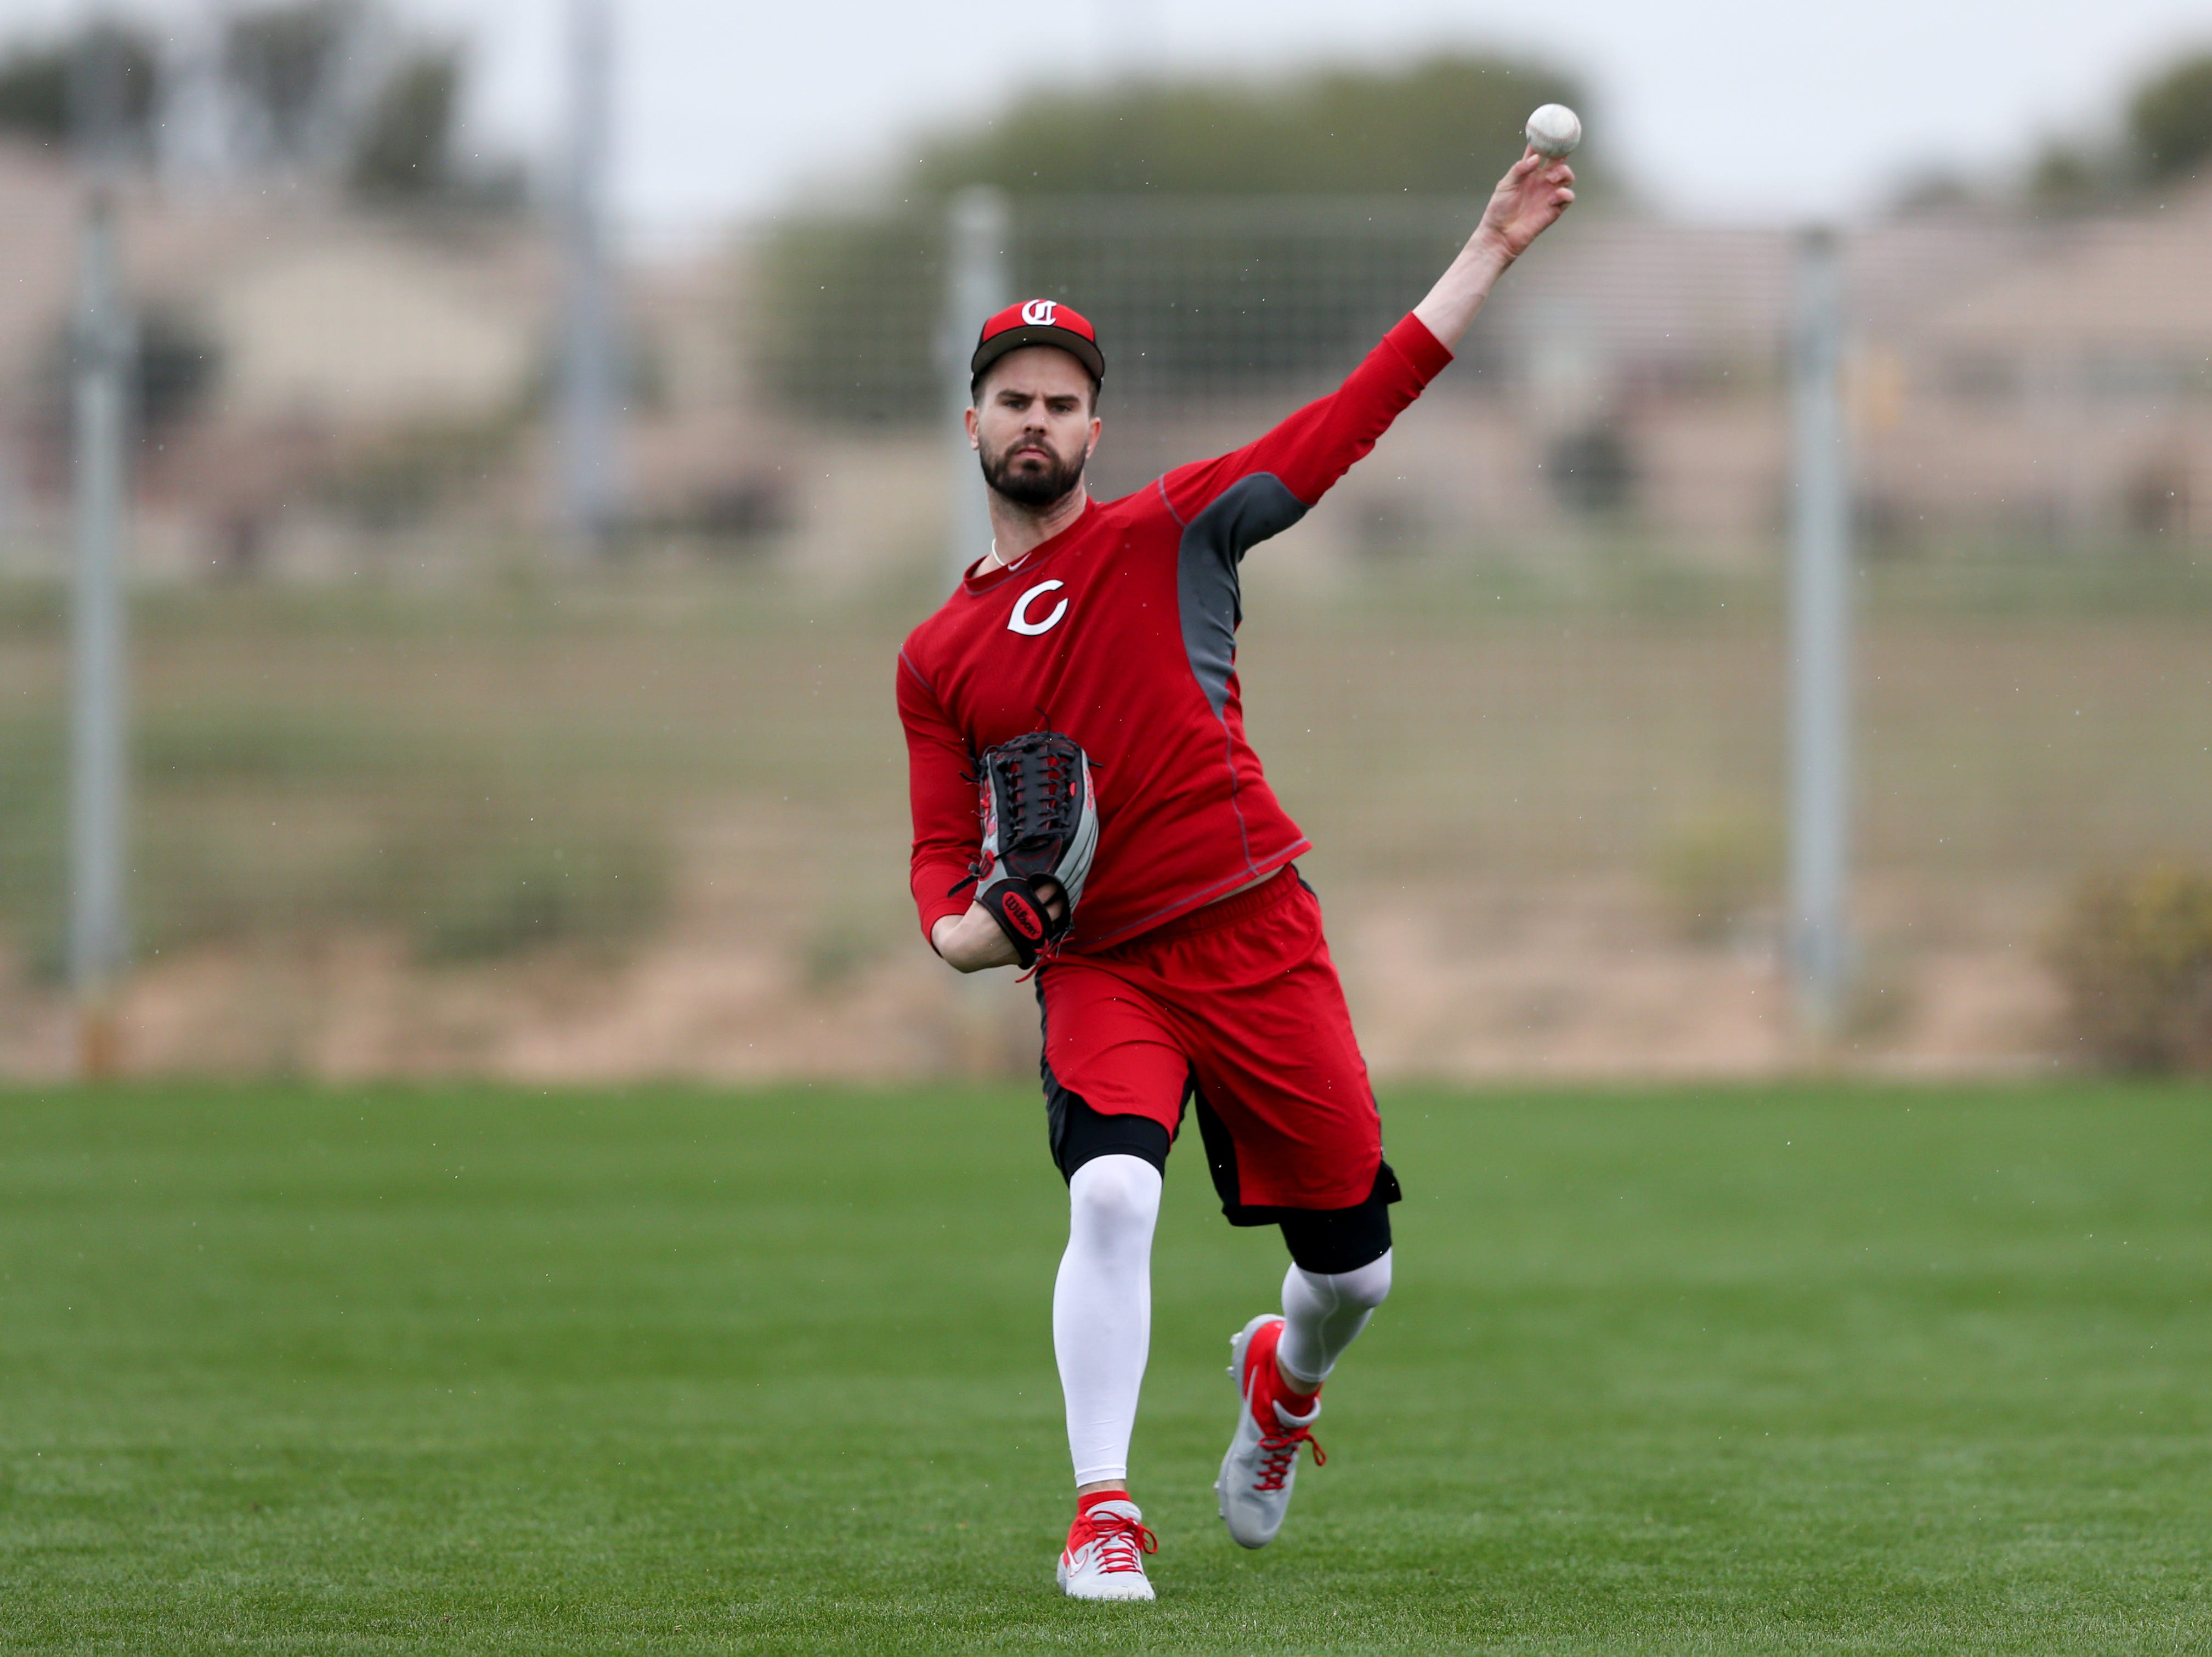 Cincinnati Reds right fielder Jesse Winker (33) tosses the ball with Cincinnati Reds outfielder Matt Kemp (27) (not pictured), as pitchers and catchers work out, Thursday, Feb. 14, 2019, at the Cincinnati Reds spring training facility in Goodyear, Arizona.